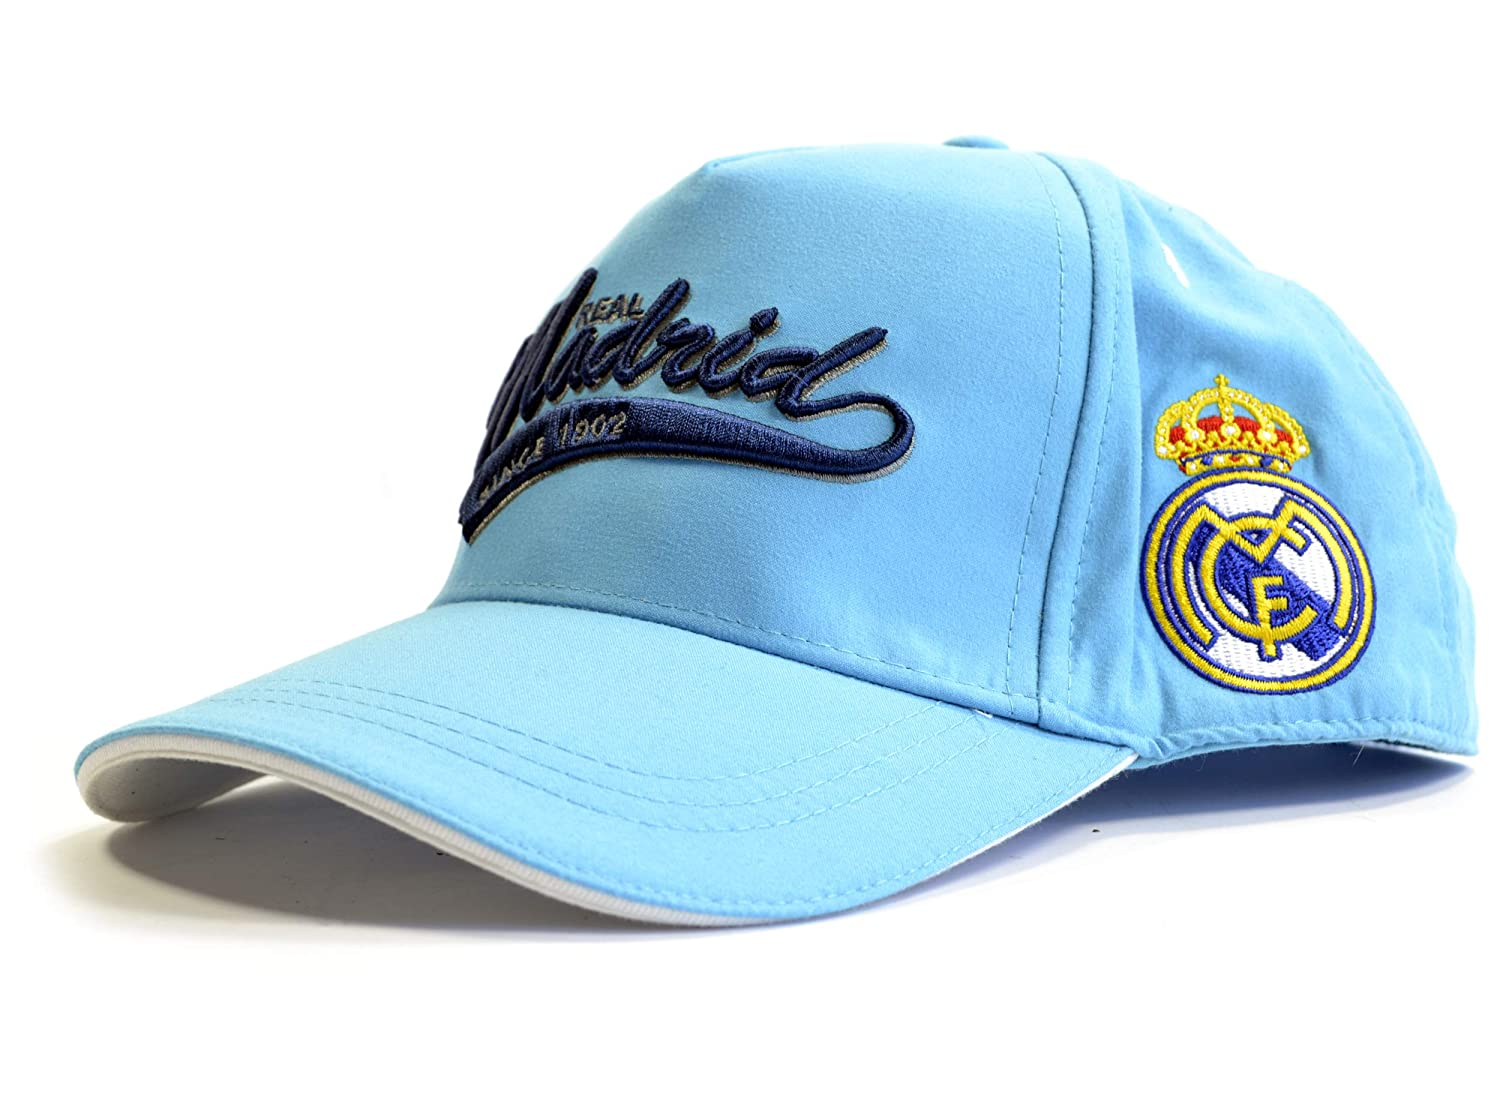 GORRA OFICIAL REAL MADRID AZUL CLARO ADULTO COTTON LIKE: Amazon.es ...